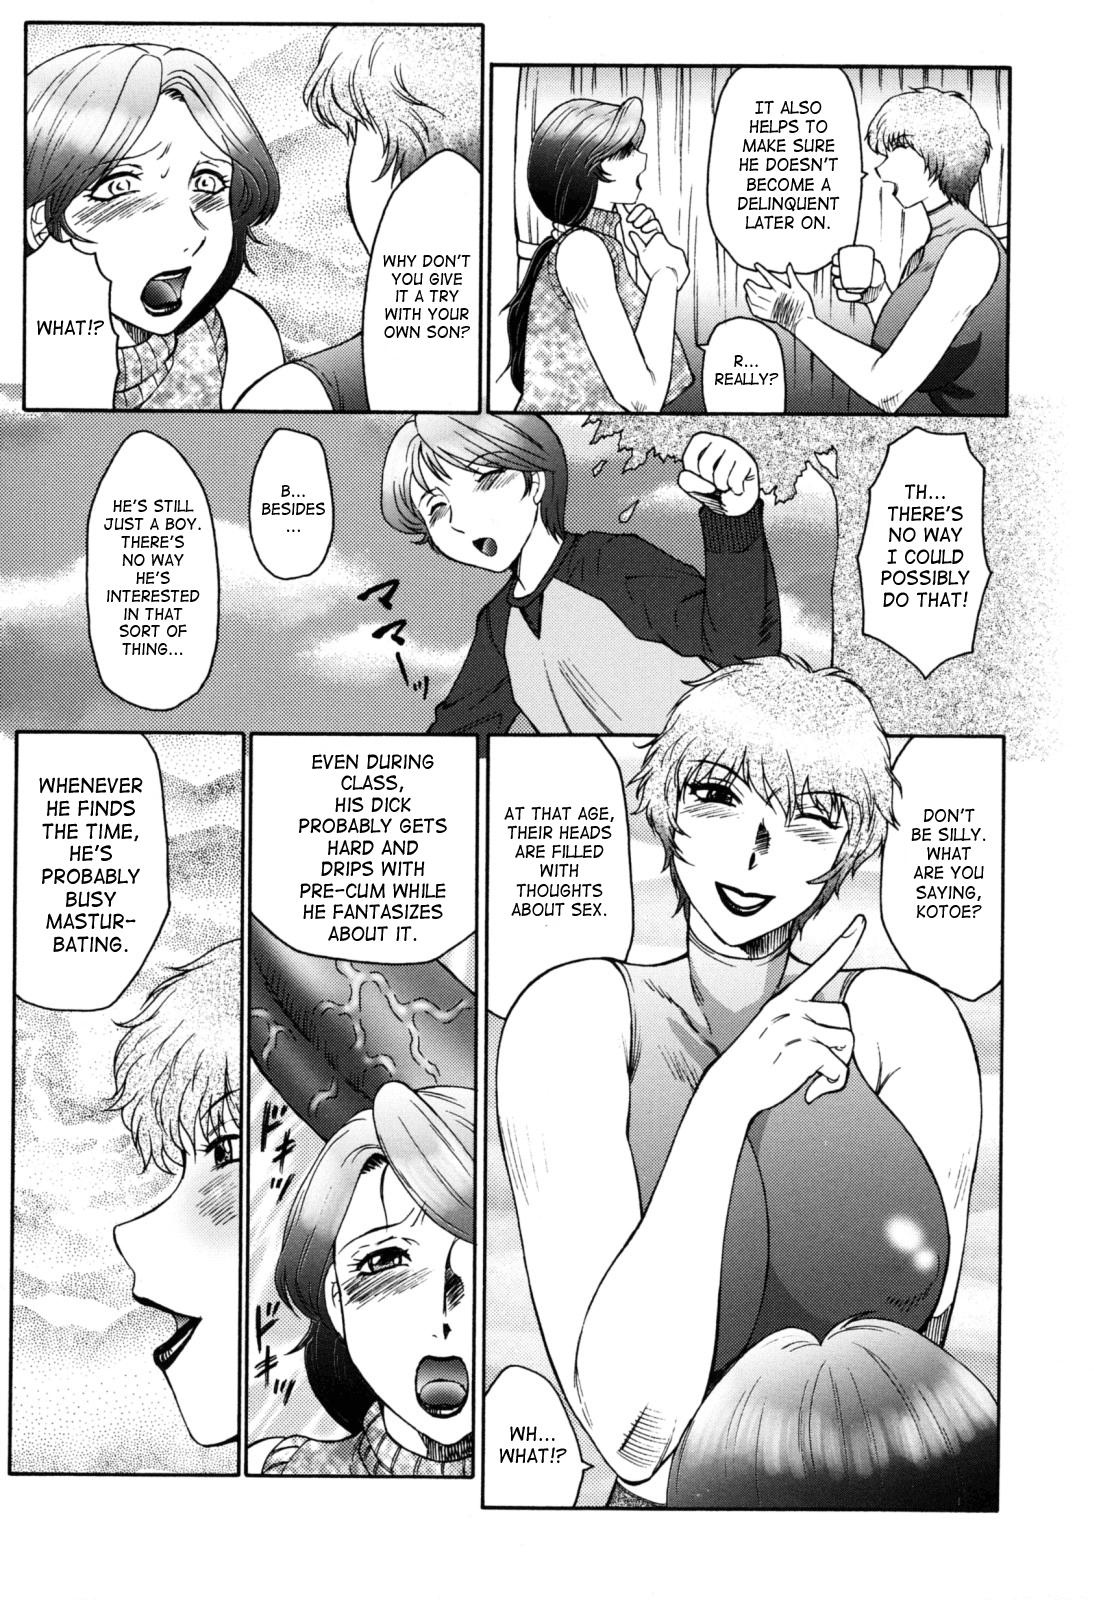 [Fuusen Club] Boshino Toriko - The Captive of Mother and the Son | Enslaved Mother and Son Ch. 1-5 [English] [SaHa] 6